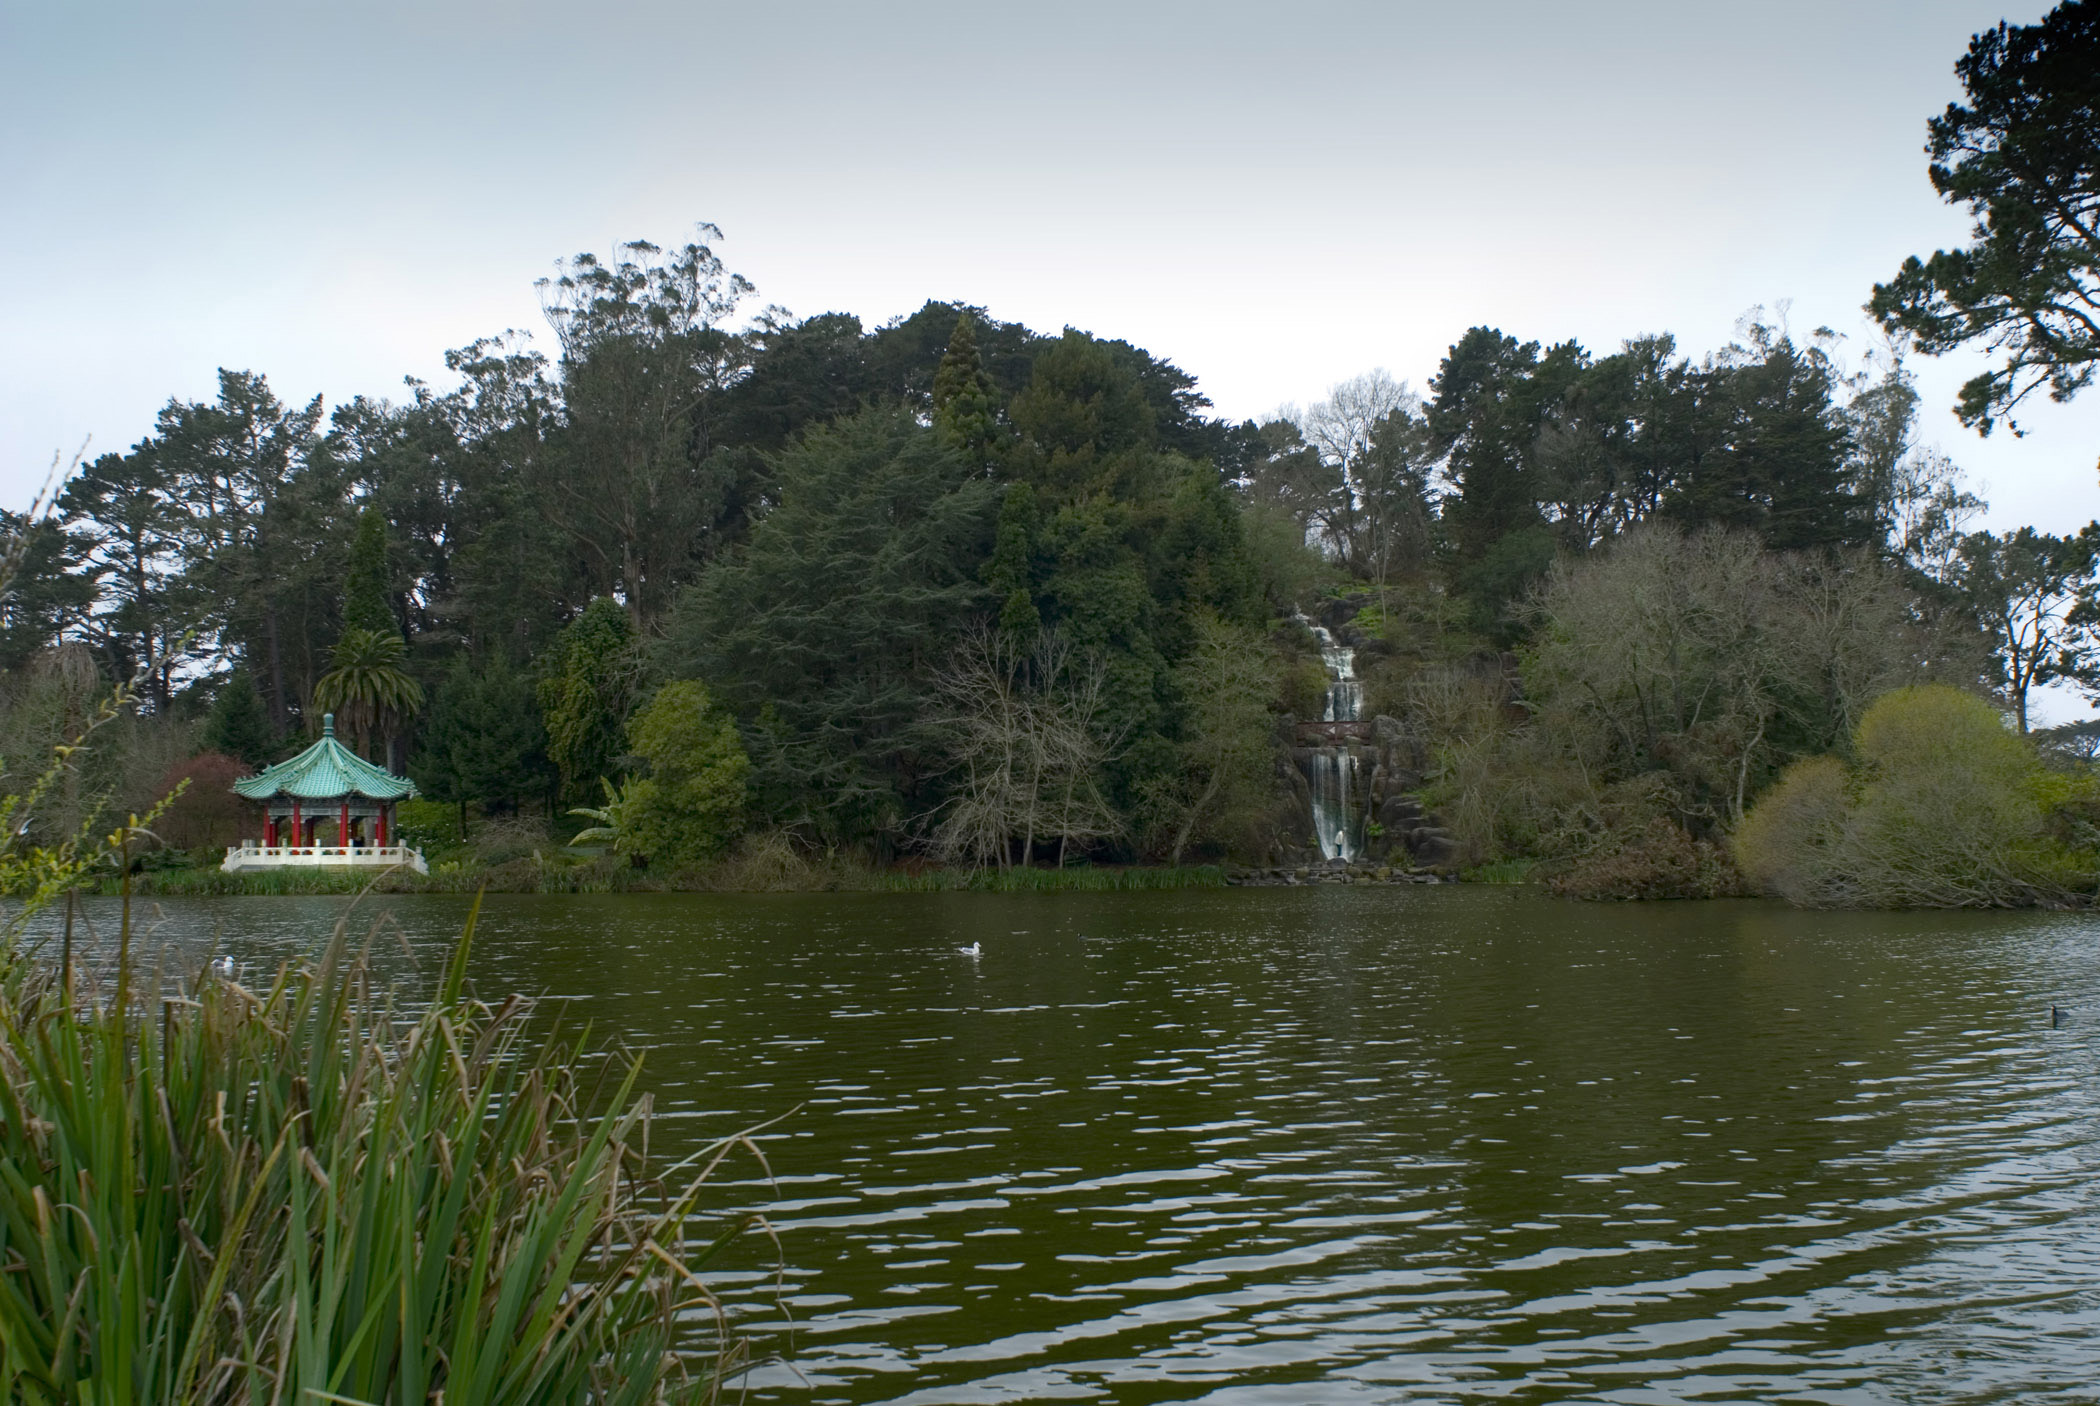 Beautiful River Surrounded by Green Plants and Trees at Golden Gate Park San Francisco.